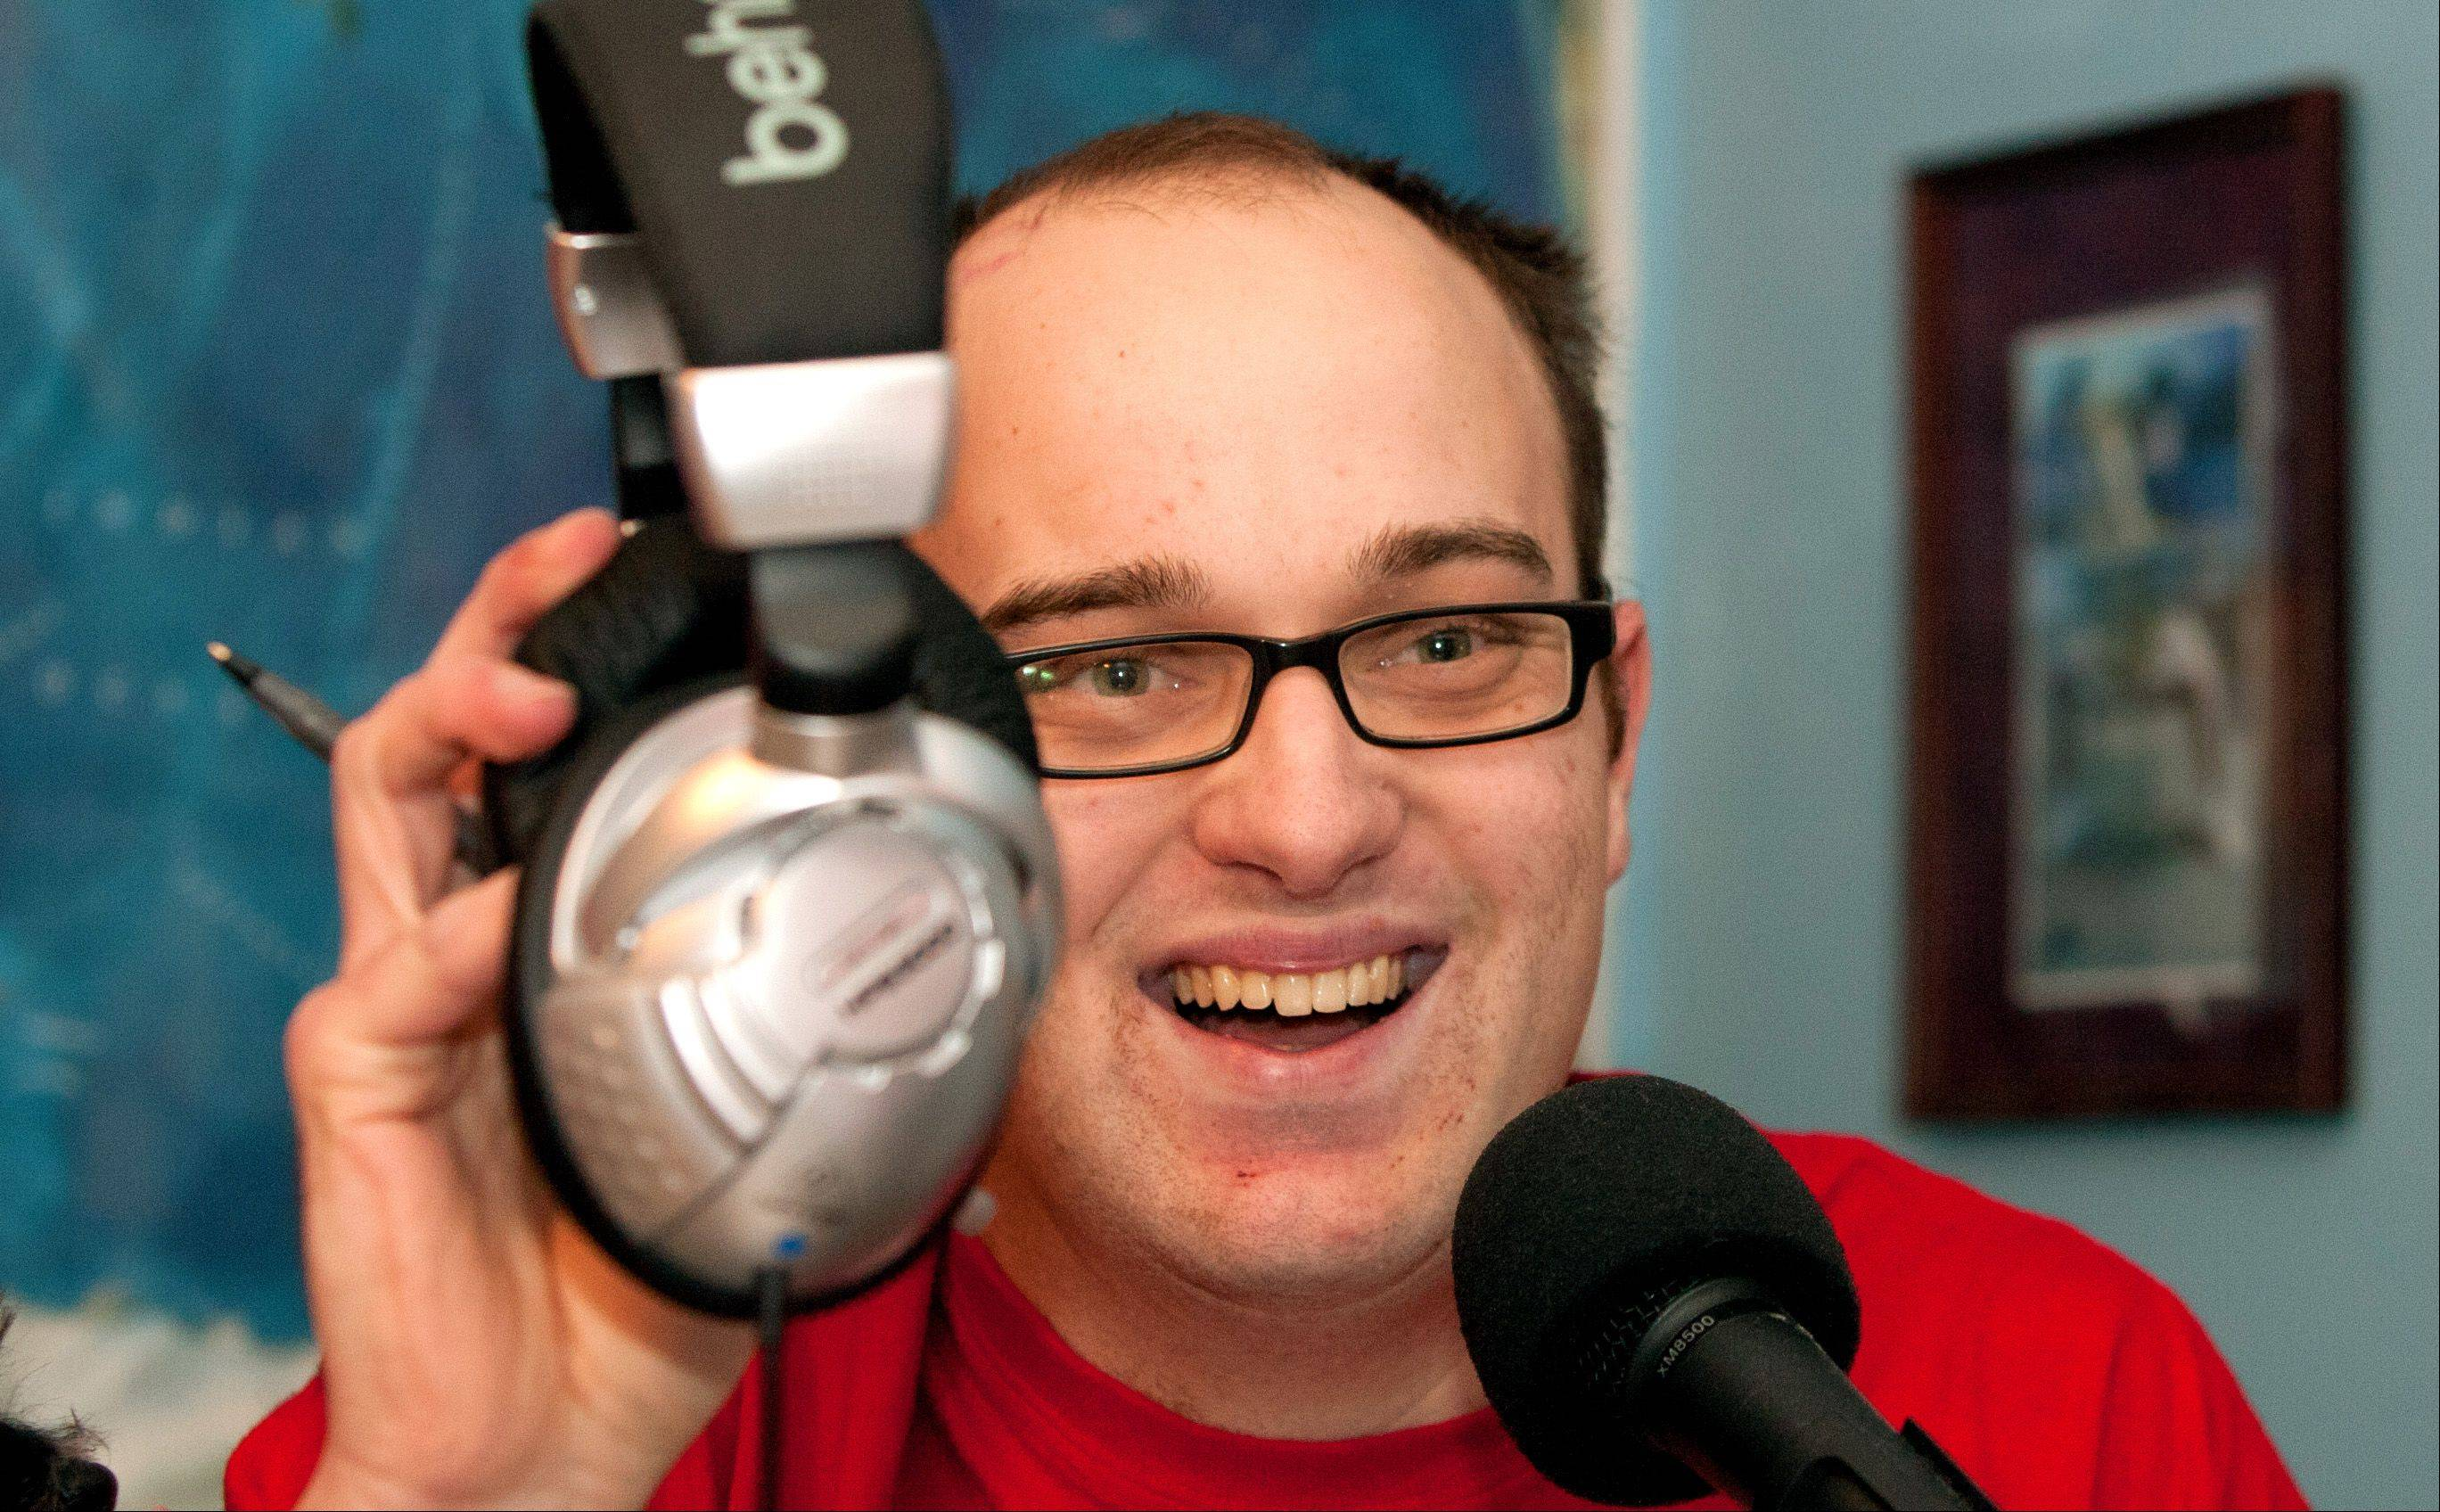 Daniel Smrokowski, 25, of Westmont is the founder and executive director of Special Chronicles, which aims to give respect and a voice to people with special needs. He podcasts disability stories from his insider's perspective.